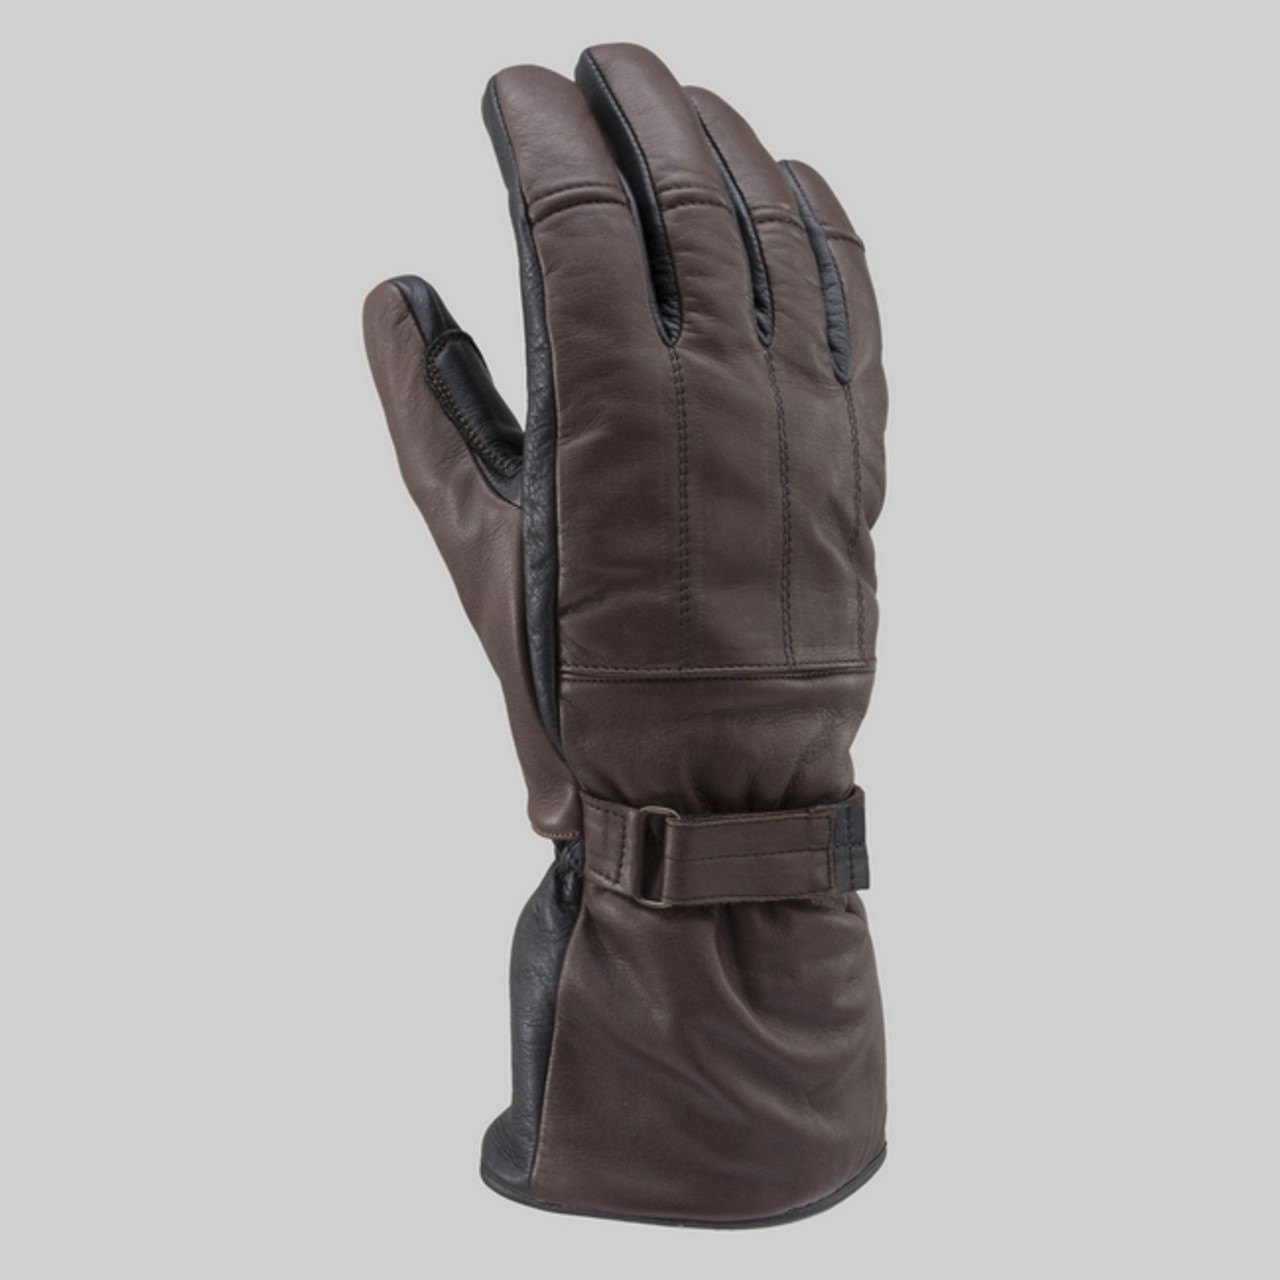 Henly Begins DH-614 Long Leather Motorcycle Gloves, Brown/Black